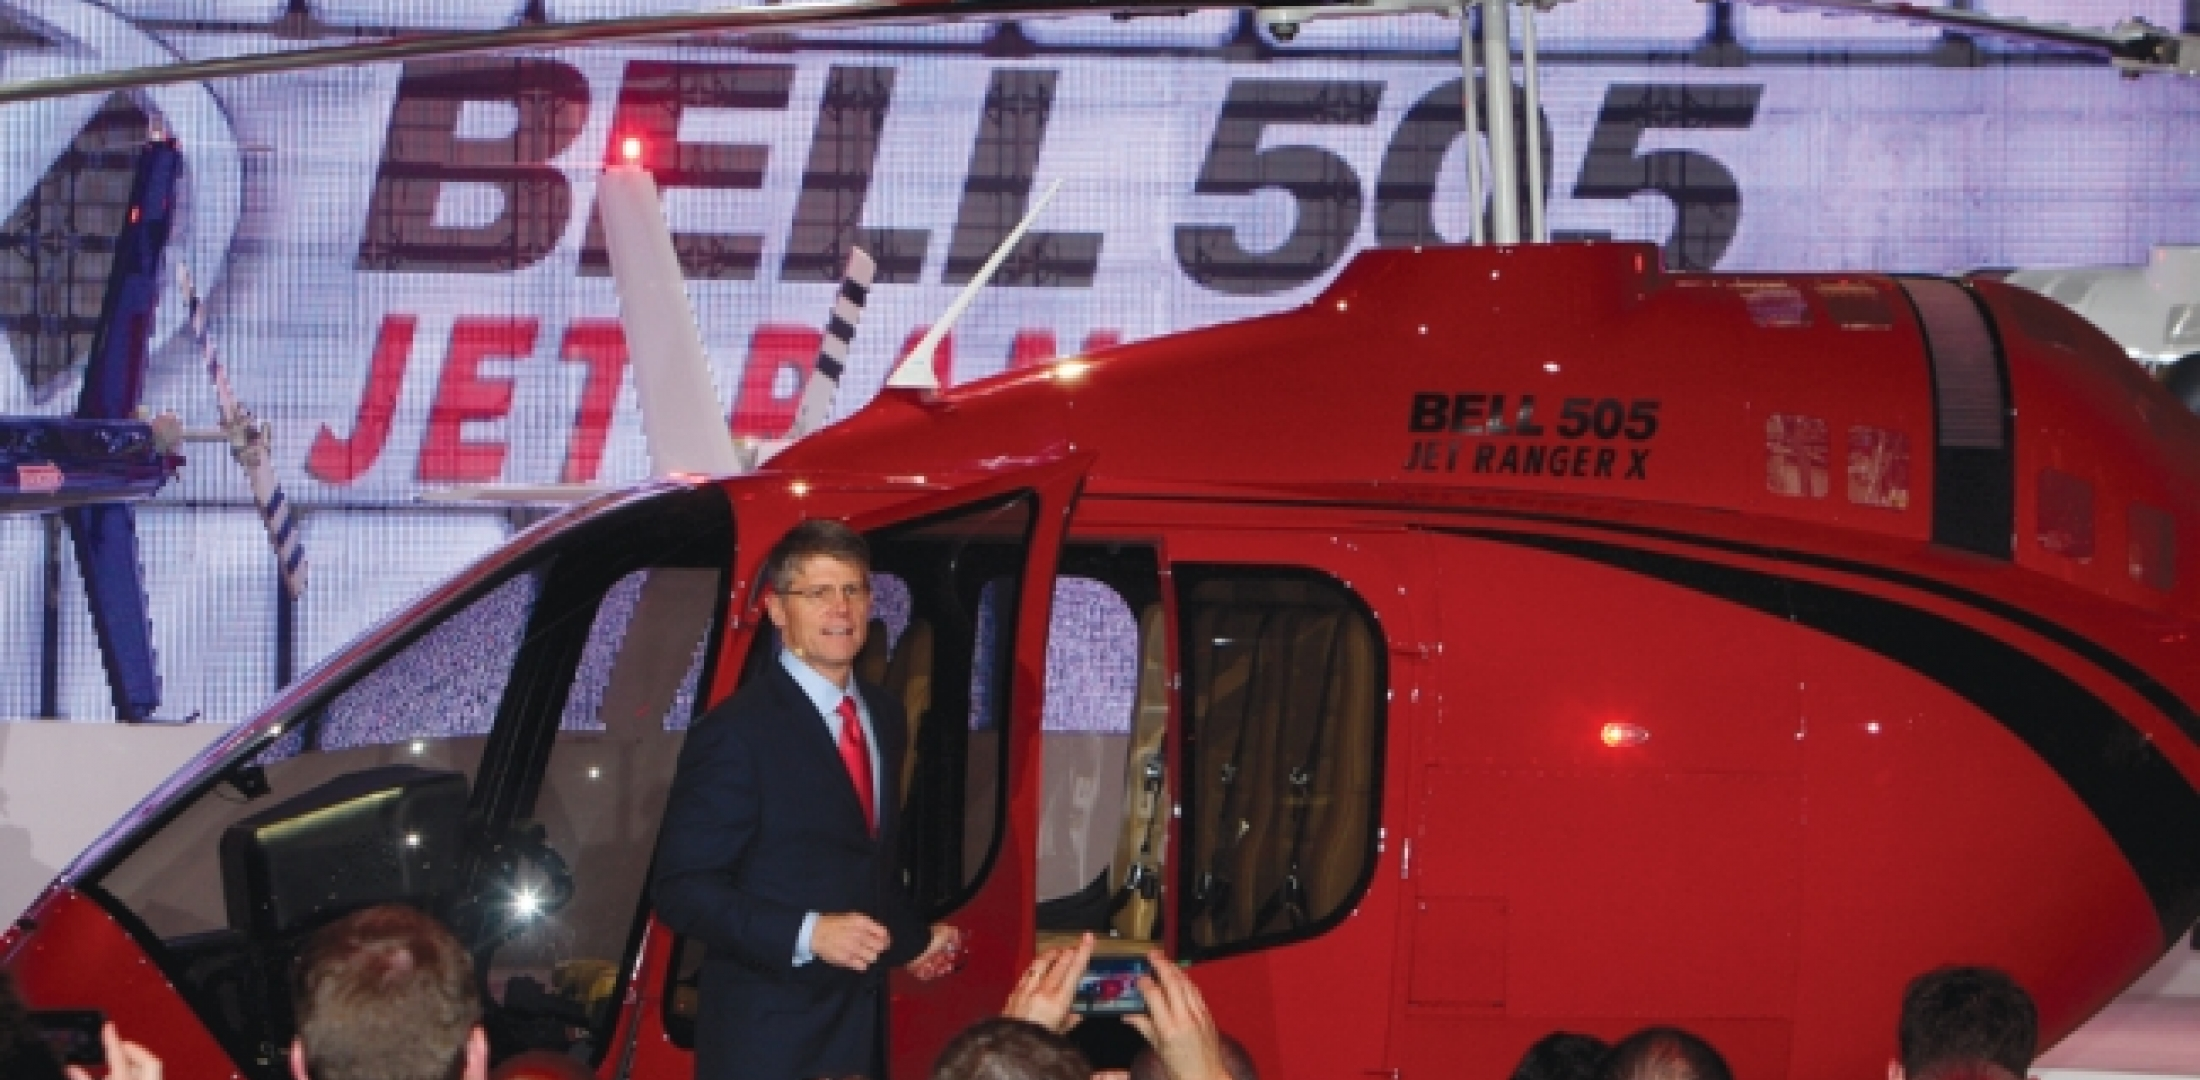 In a choreographed display of lights and music, Bell Helicopter unveiled not one but three full-scale mockups of what the company had been calling its short light single helicopter and now calls the Bell 505 Jet Ranger X. Bell CEO John Garrison  said that the new model will be priced at about $1 million to make it price competitive with the Robinson Helicopter R66.  Photo by Barry Ambrose.